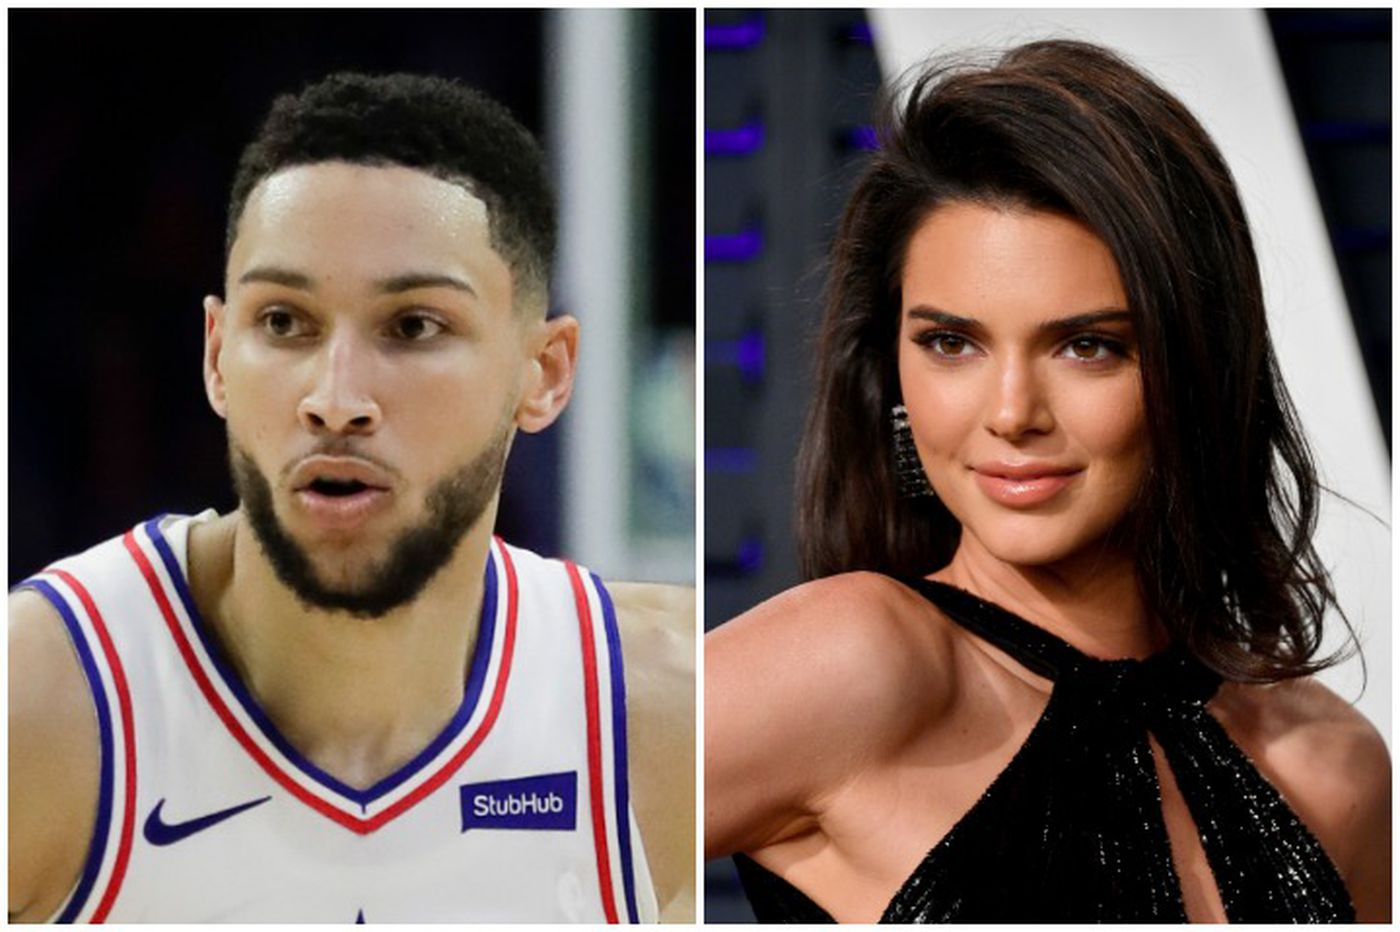 Ben Simmons and Kendall Jenner break up